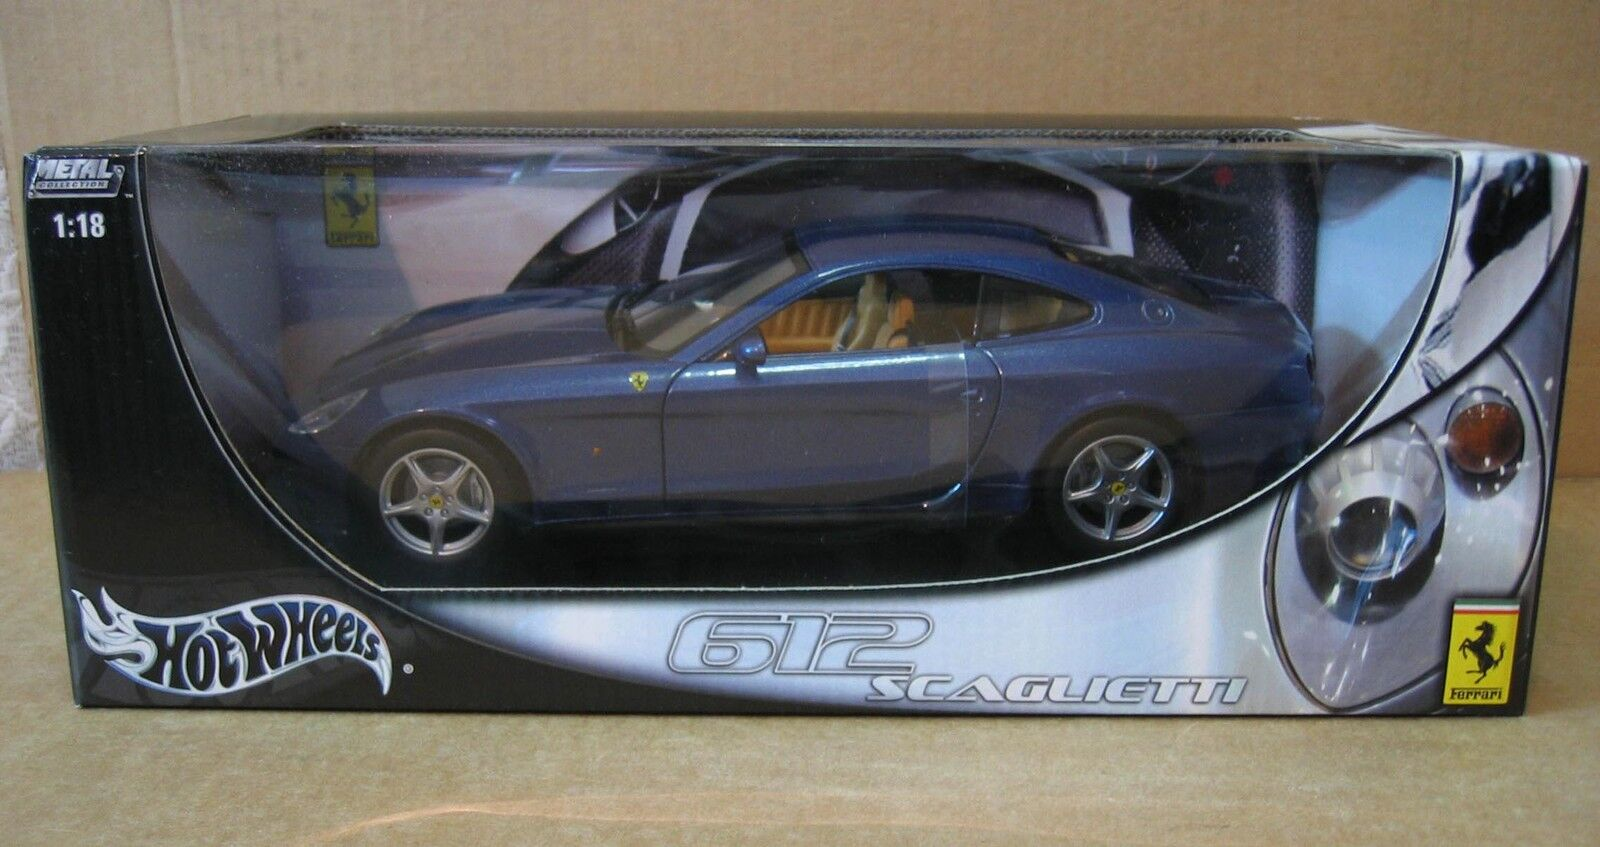 "Hot Wheels Ferrari Enzo 612 Scaglietti 10½"" Long bluee Car DieCast 1 18 NEW C7522"